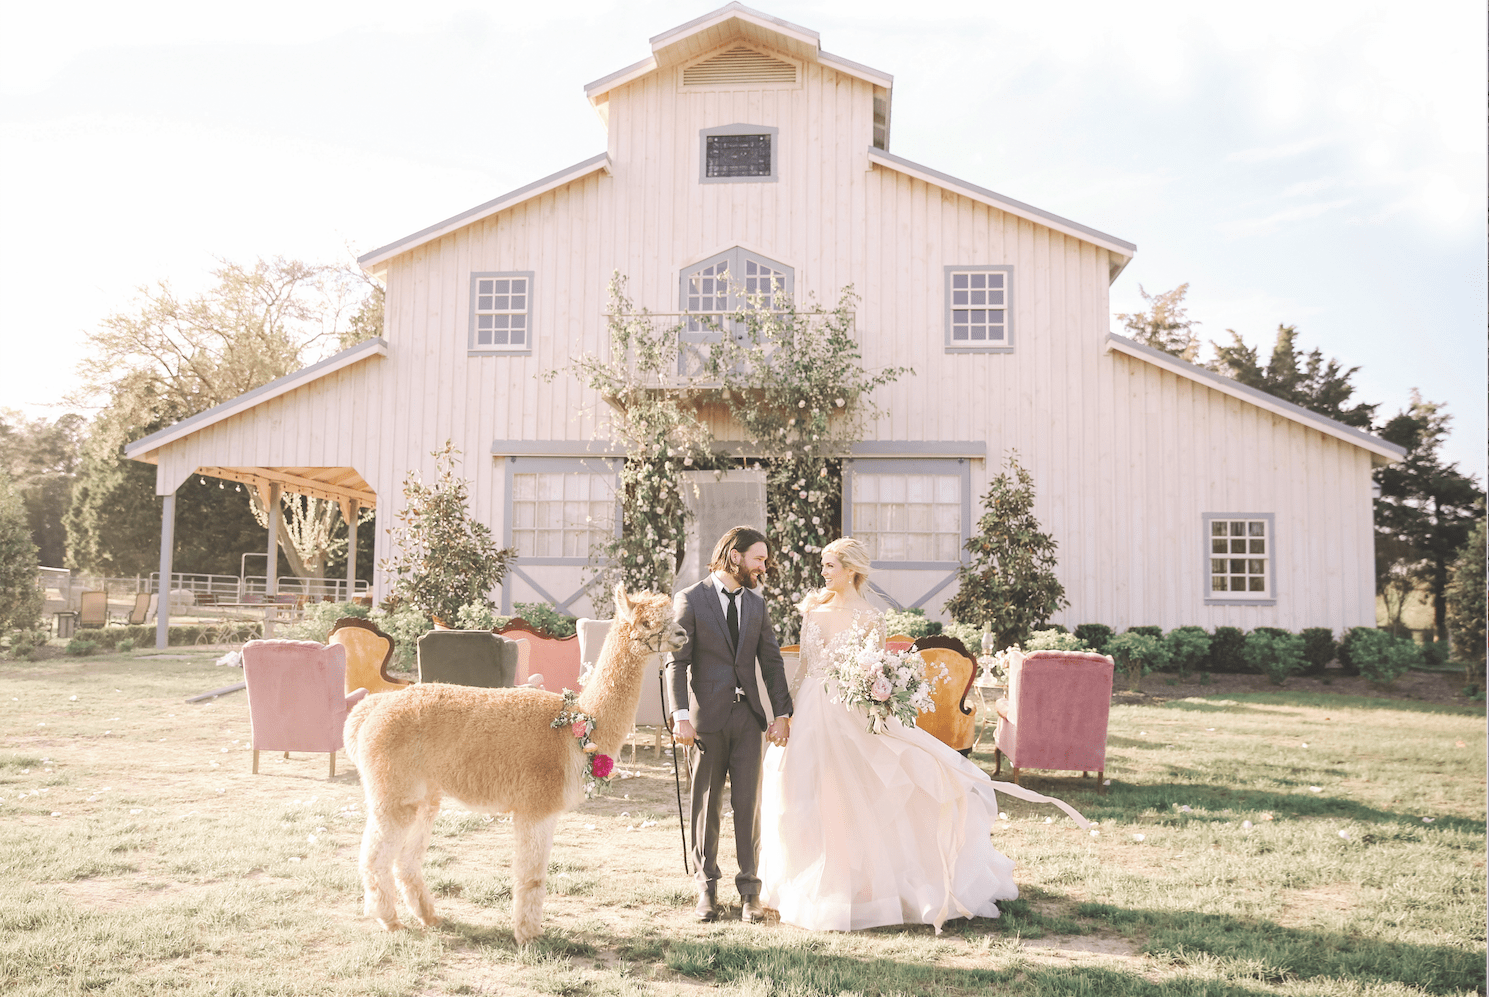 NJ-alpaca-weddings-Kay-English-Photography